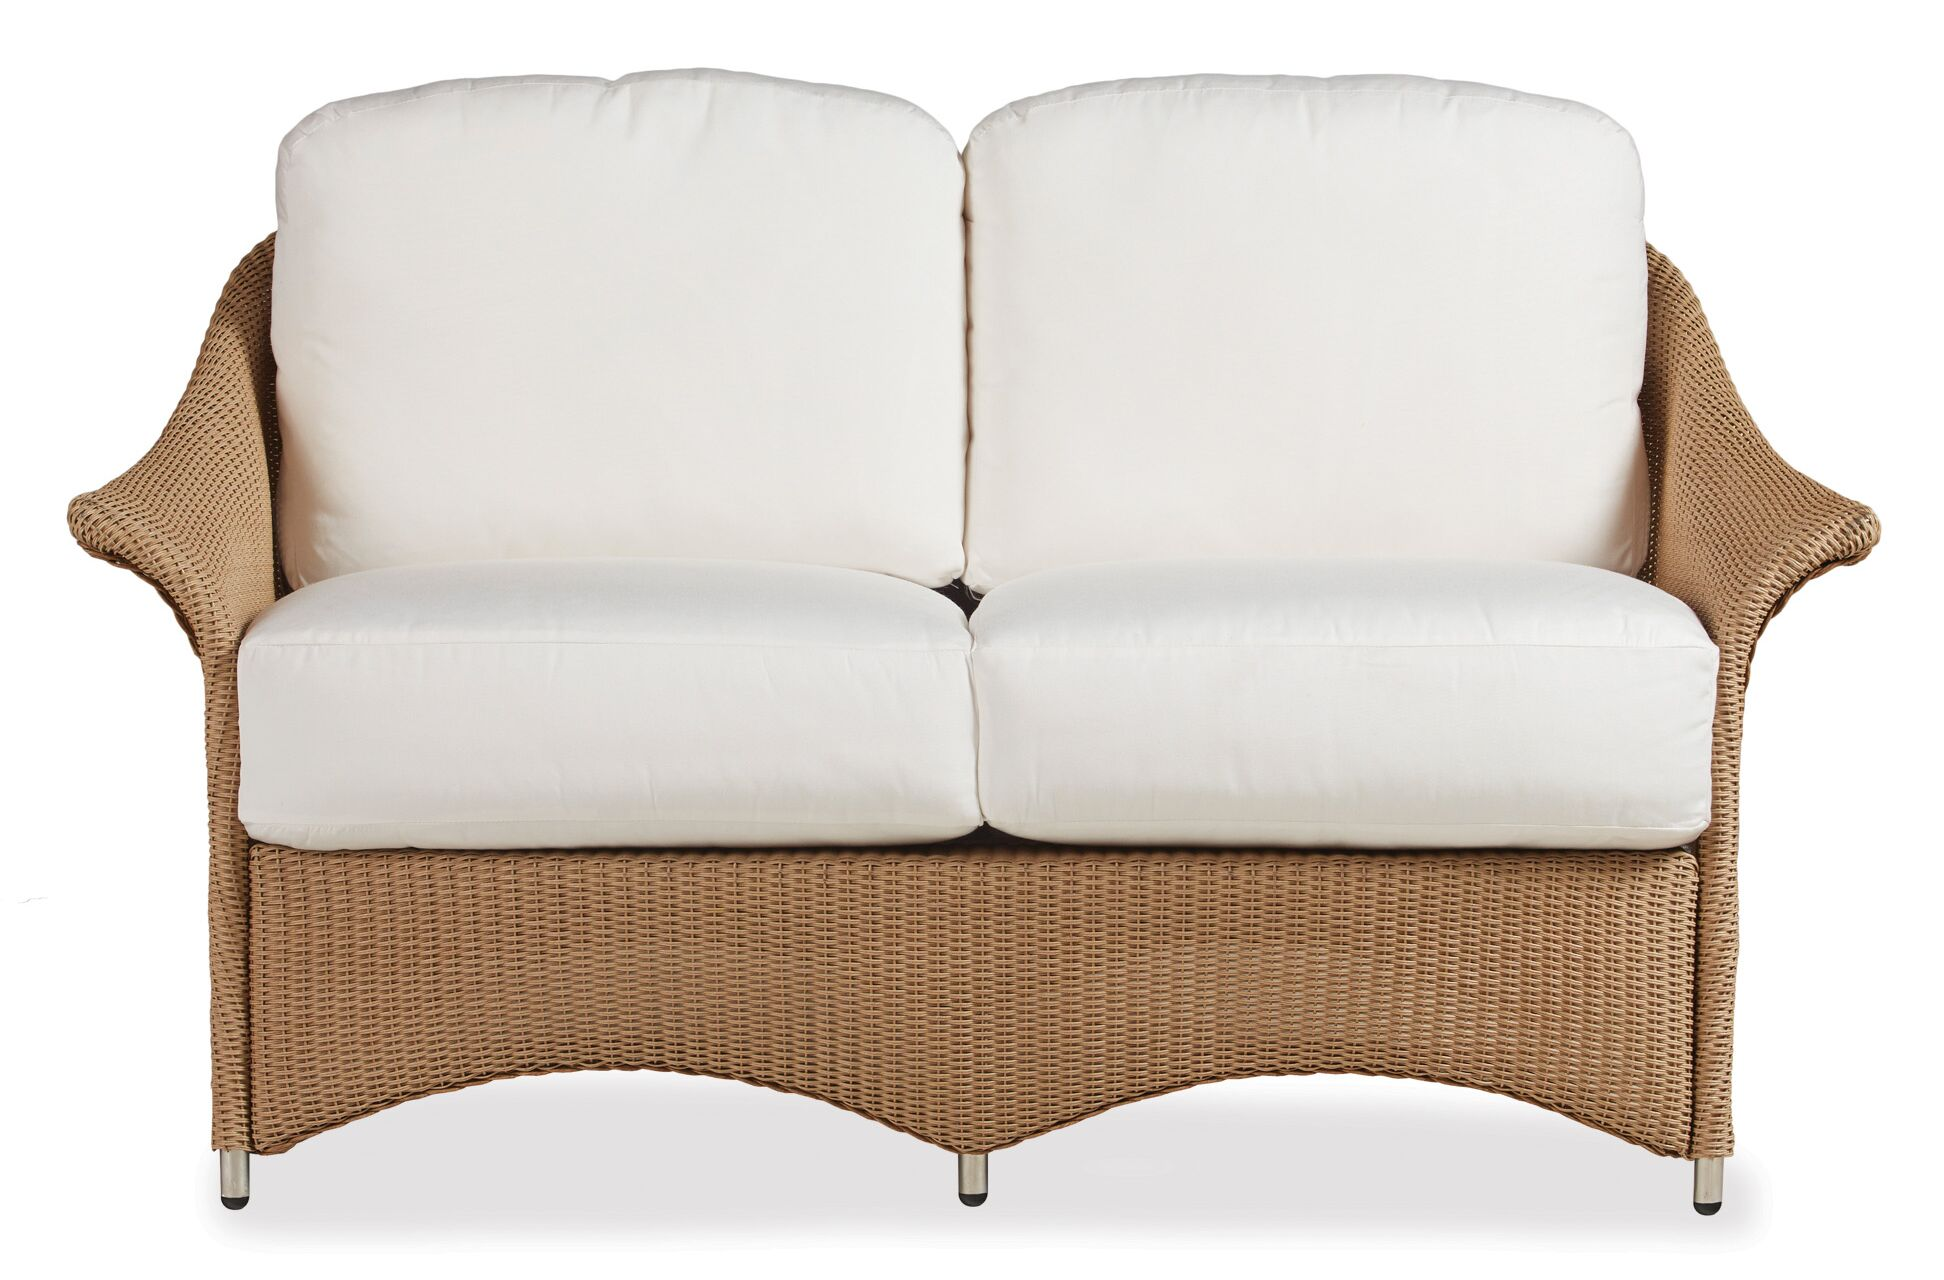 Generations Loveseat with Cushions Finish: Mink